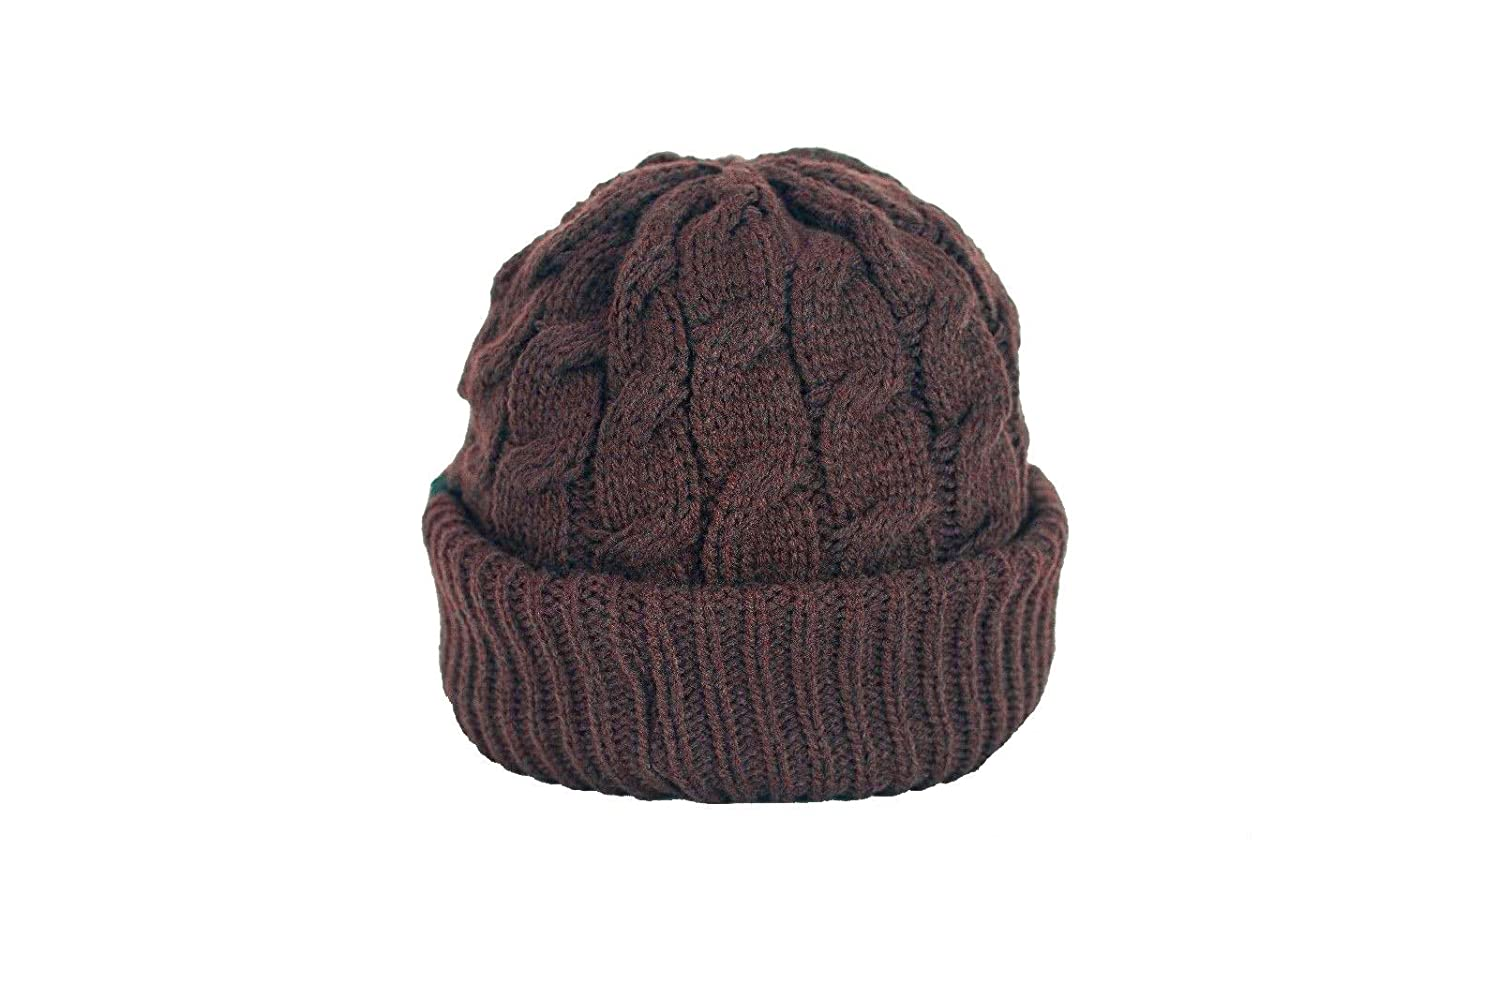 81b10efd611 Urbanhatshop Newsboy Cable Knitted Visor Beanie Bill Winter Warm Hat All  Colors